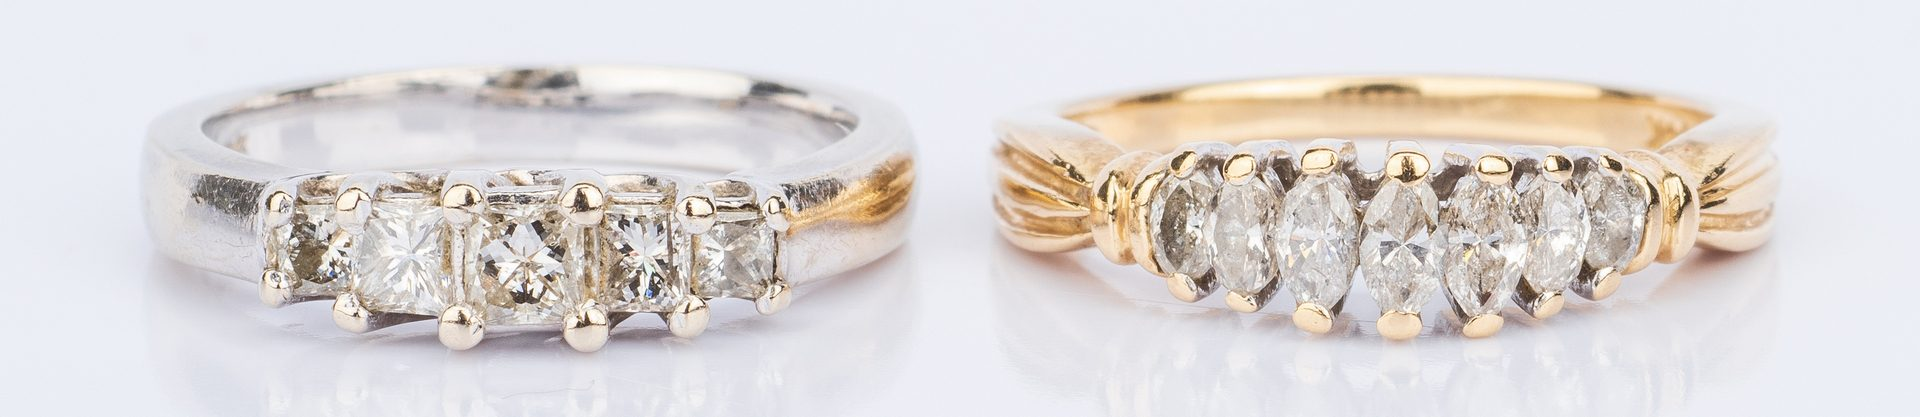 Lot 852: 2 Diamond Bands, Princess and Marquise Cut